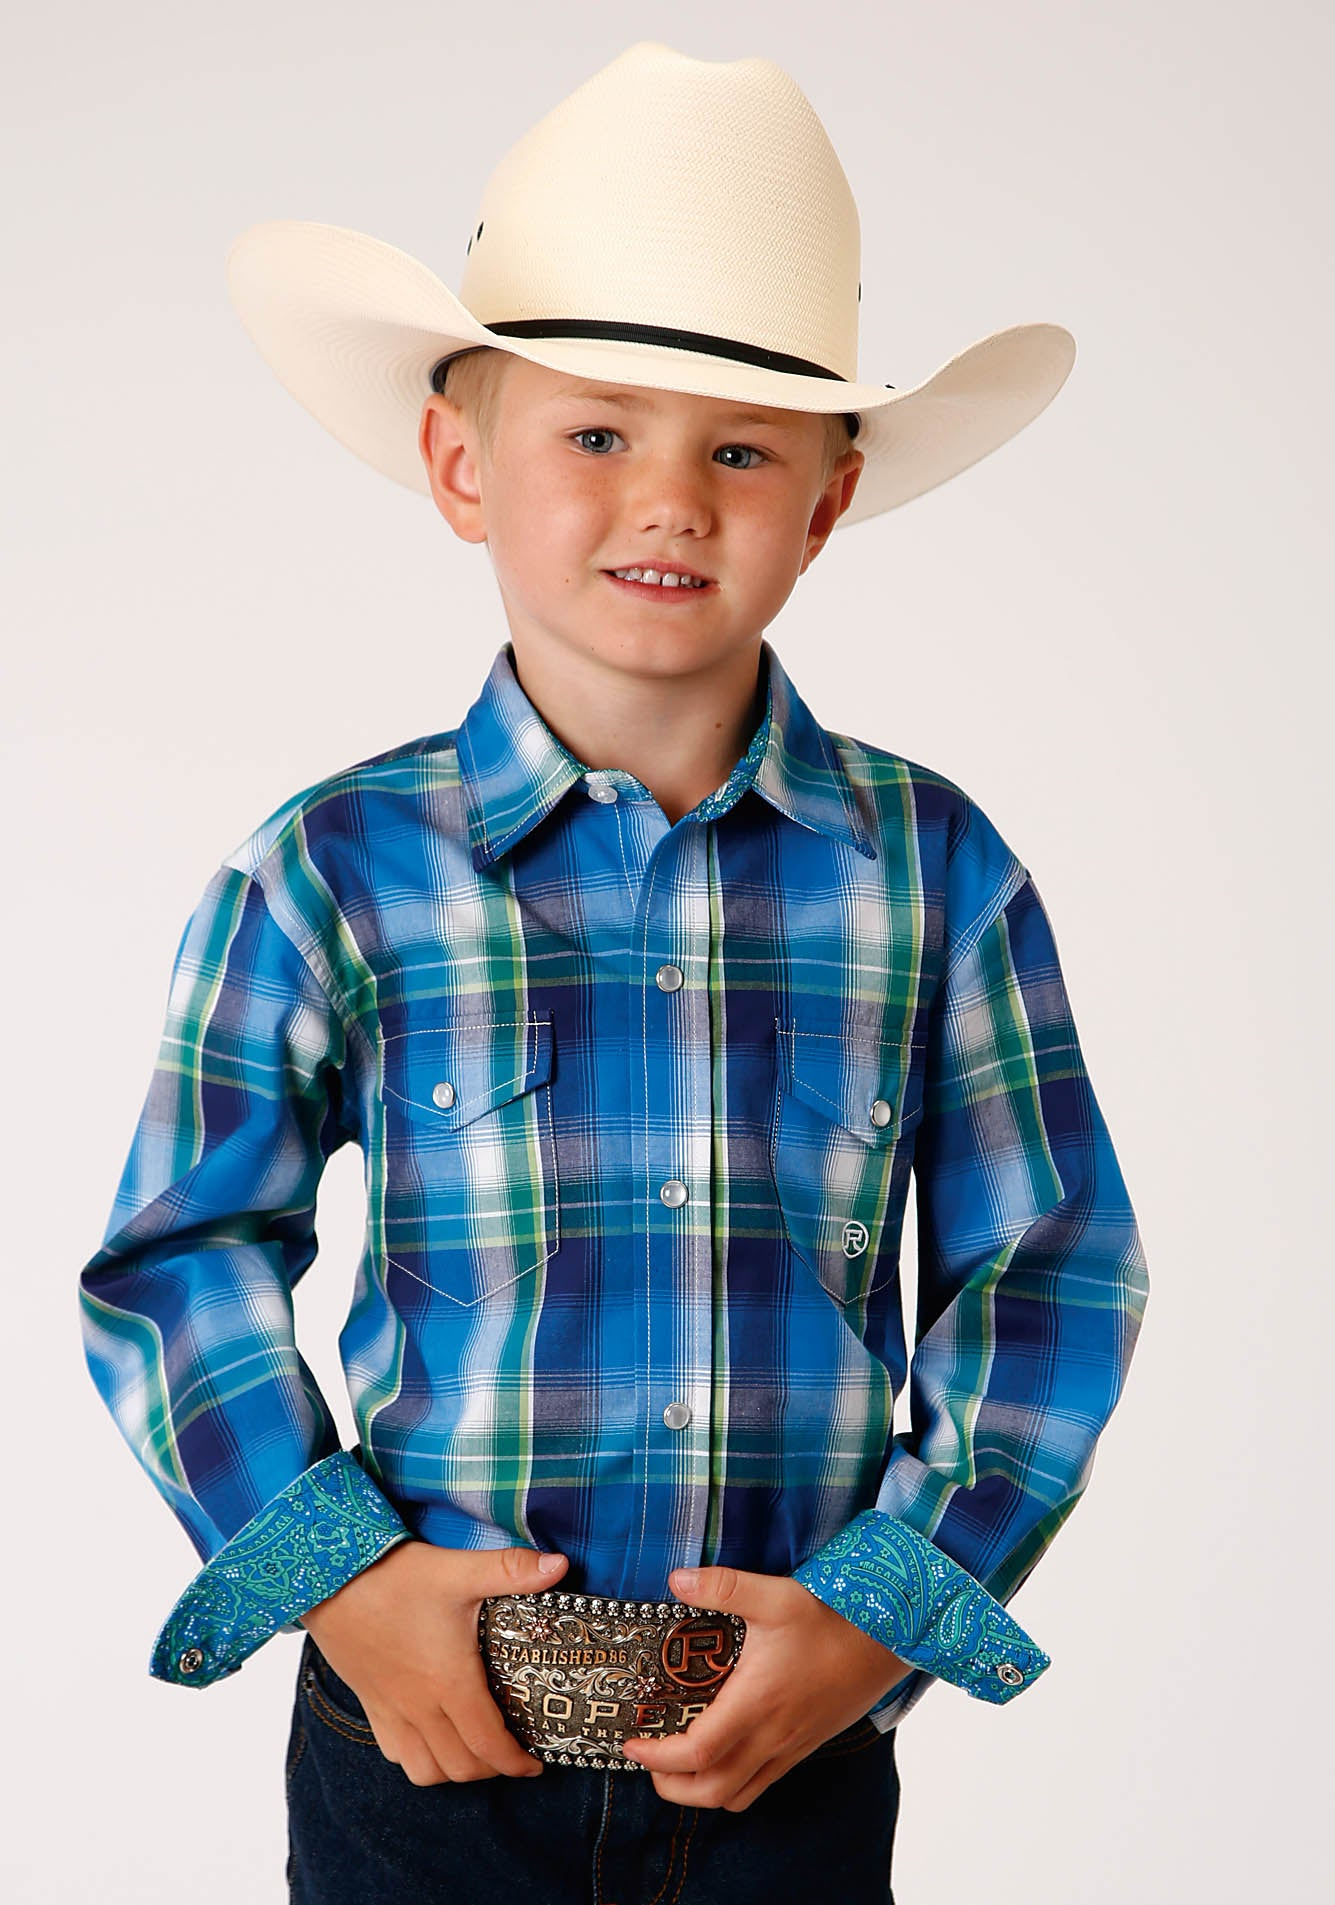 ROPER BOYS BLUE 00157 WATER PLAID BOY'S AMARILLO COLLECTION - BLUE RIDGE LONG SLEEVE